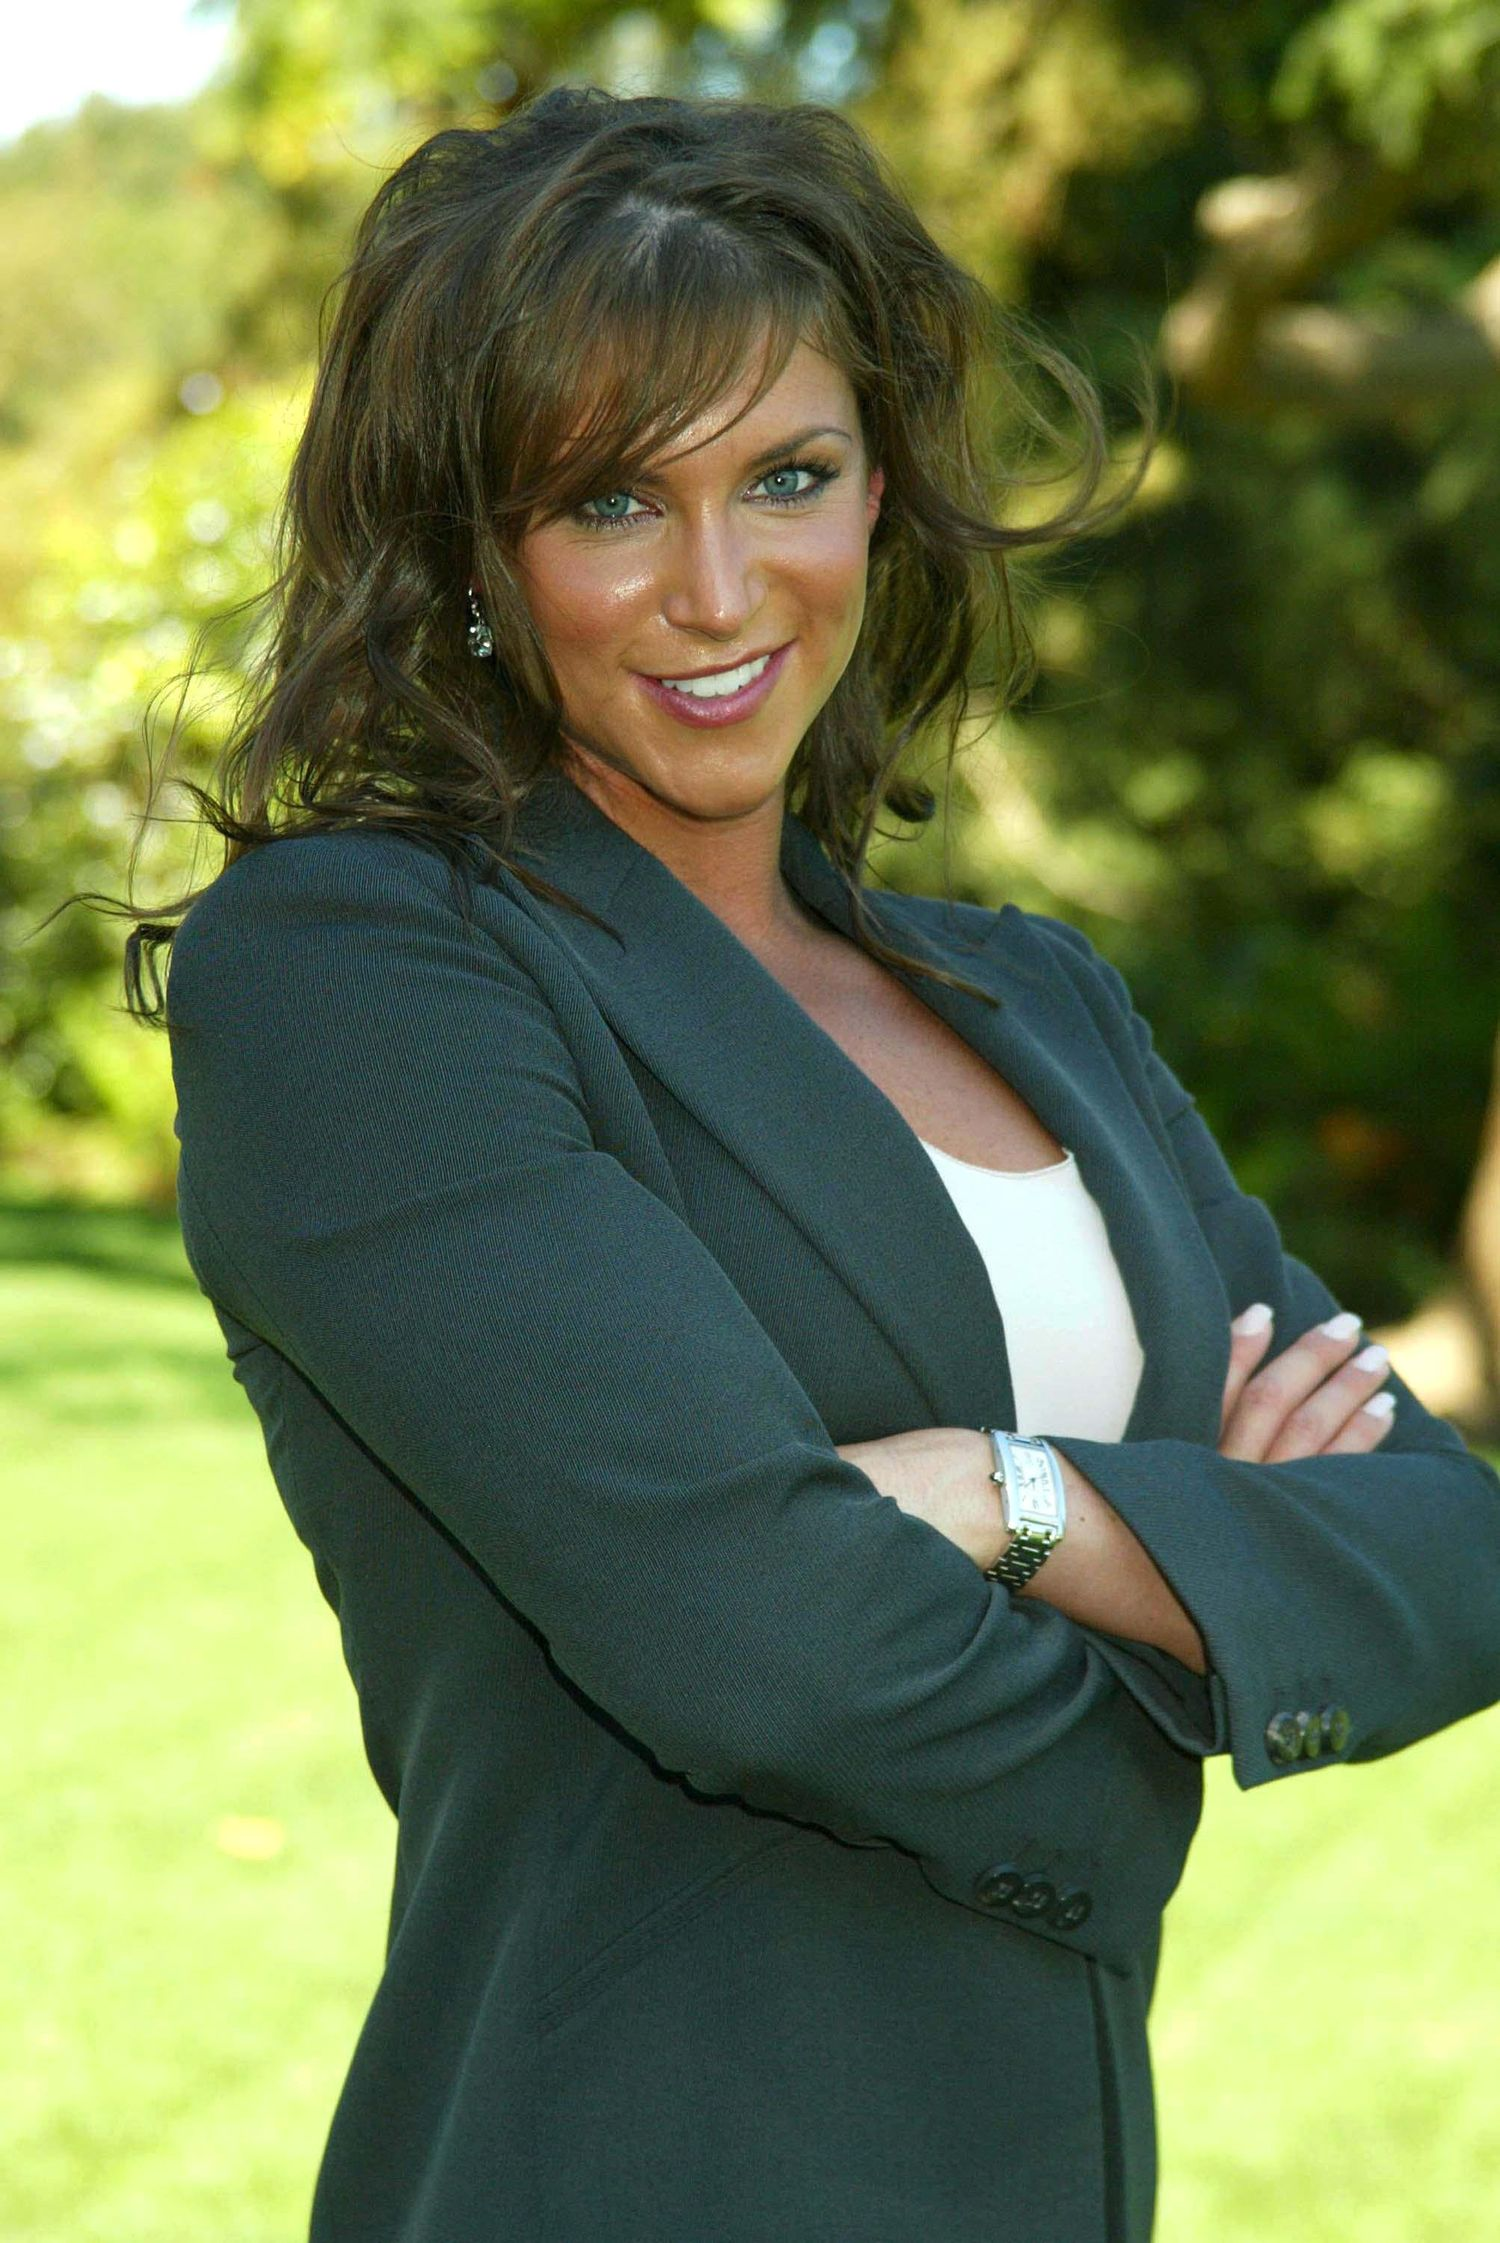 Stephanie McMahon at the Playboy Mansion in 2003 ...